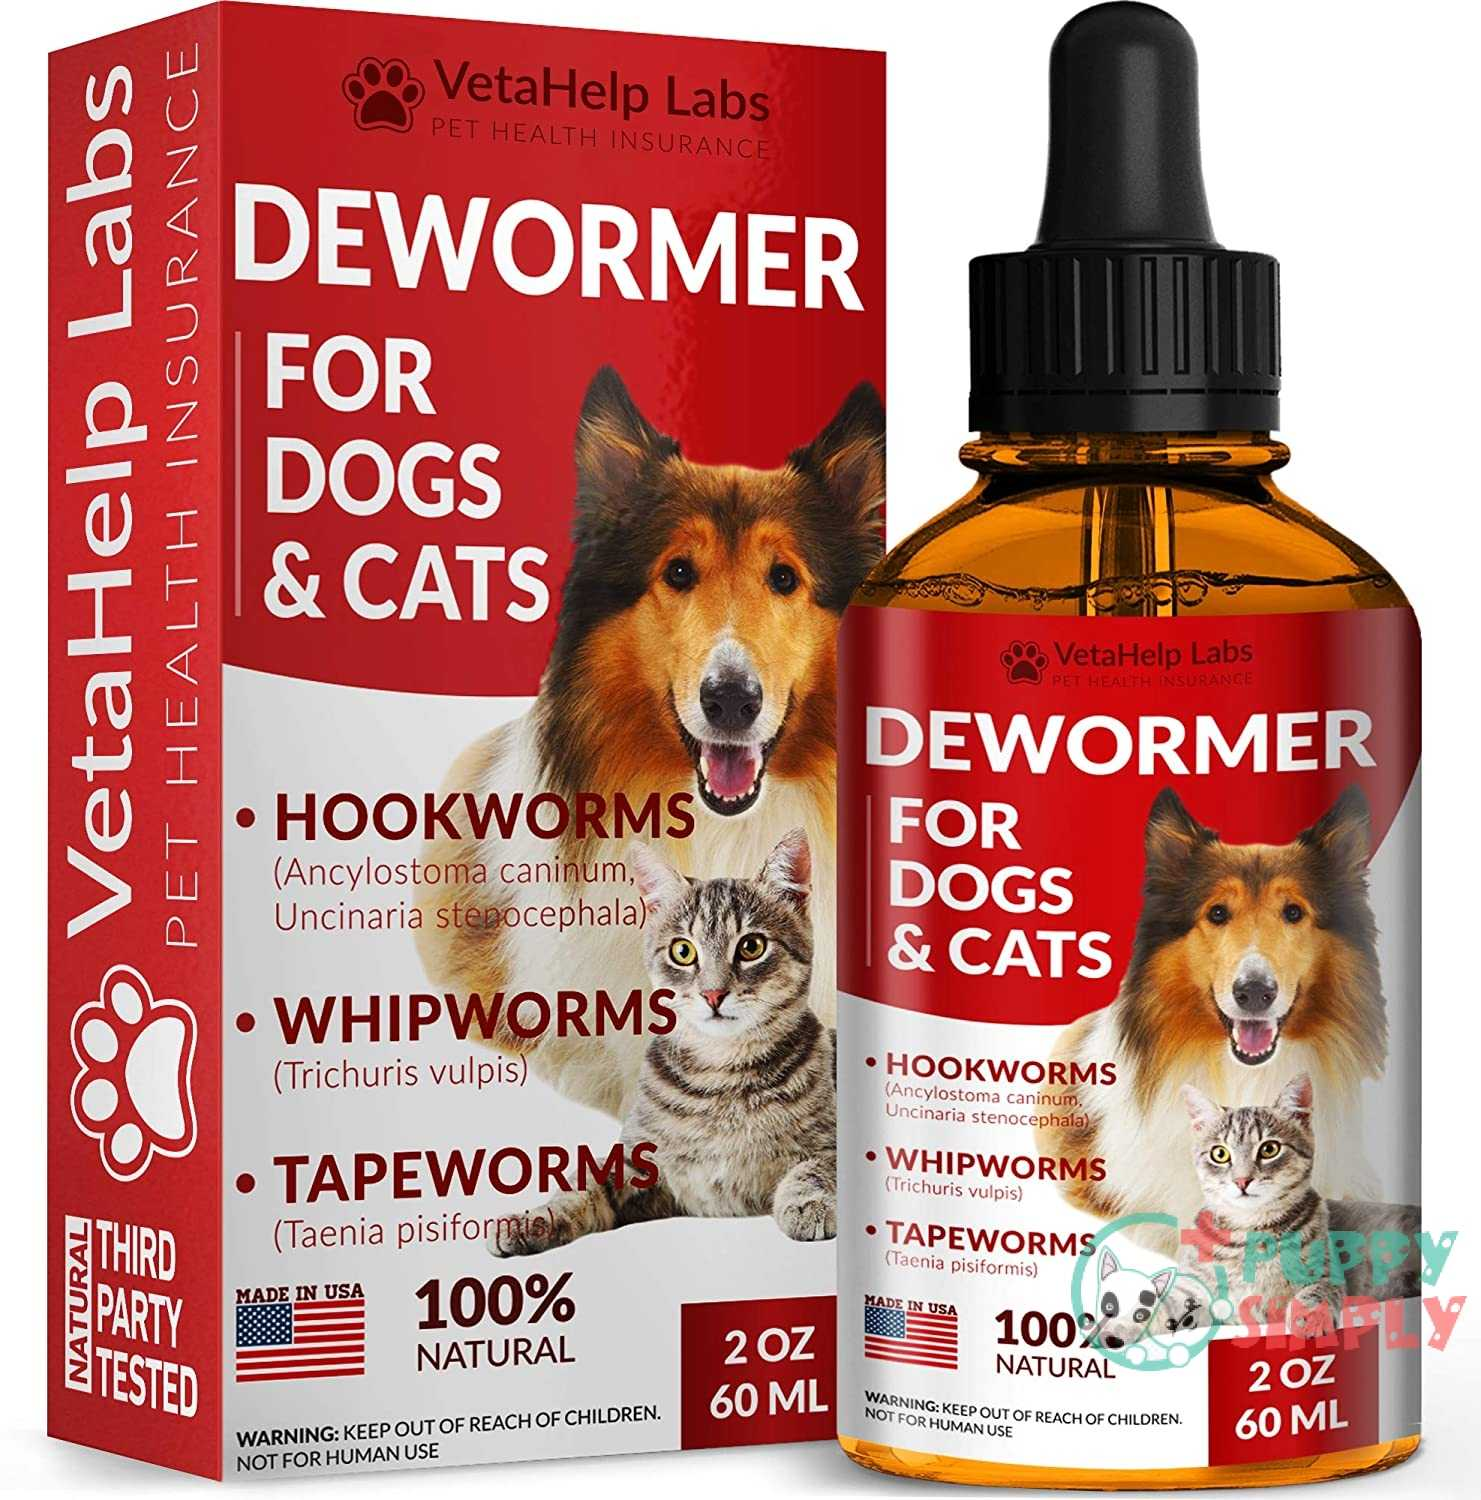 DEW0RMER for Dogs & Cats